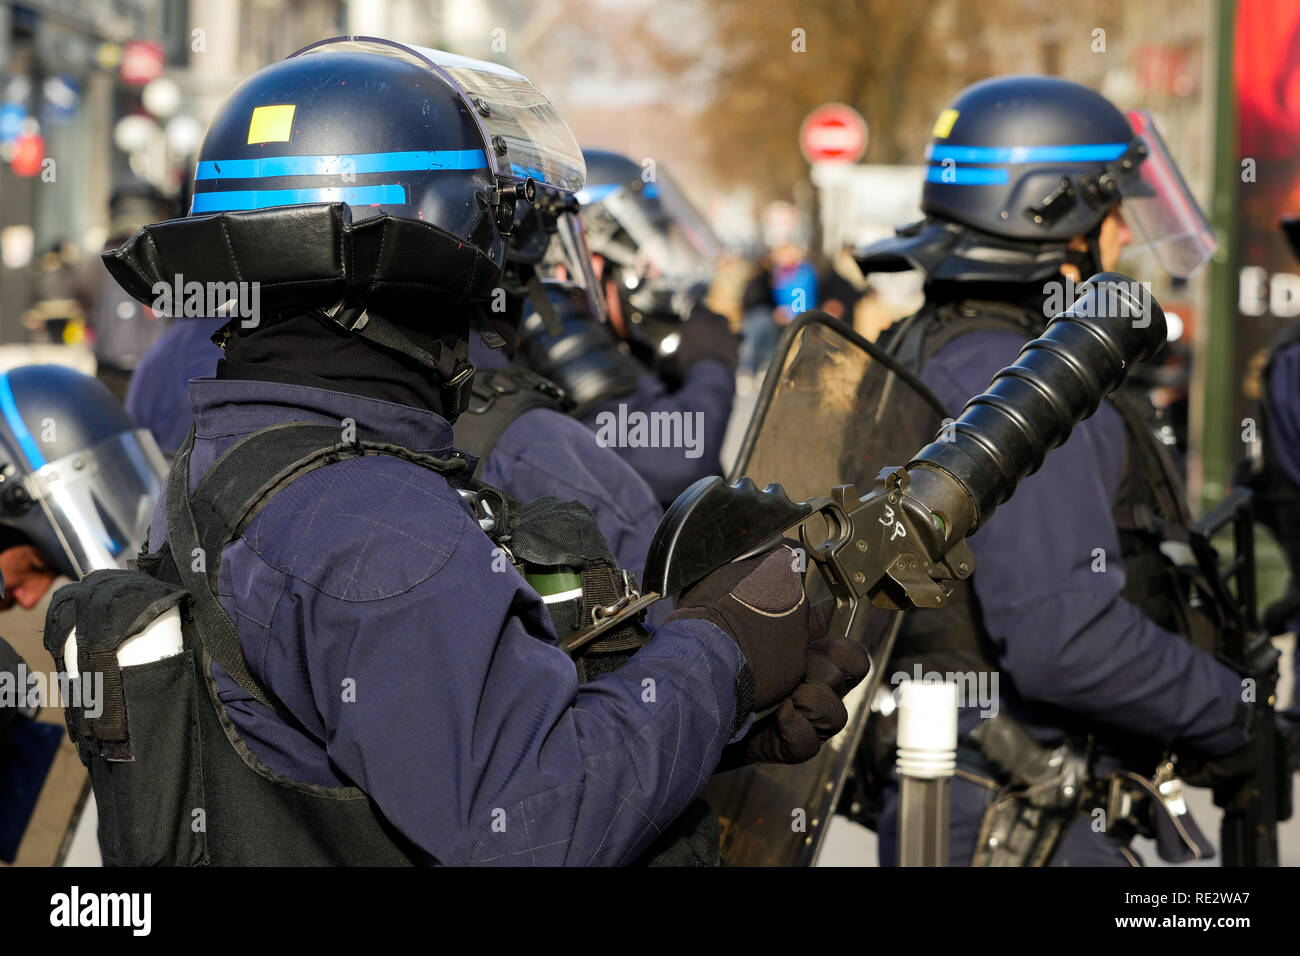 Lyon, France, January 19th 2019: Riot police officers handle  LBD40 less lethal gun (also called Flashball)  to push back Yellow jackets as they take part to the 10th day of protest against french goverment reform projetct. in Lyon (Central-Eastern France) on january 19, 2019.  Credit Photo: Serge Mouraret/Alamy Live News - Stock Image